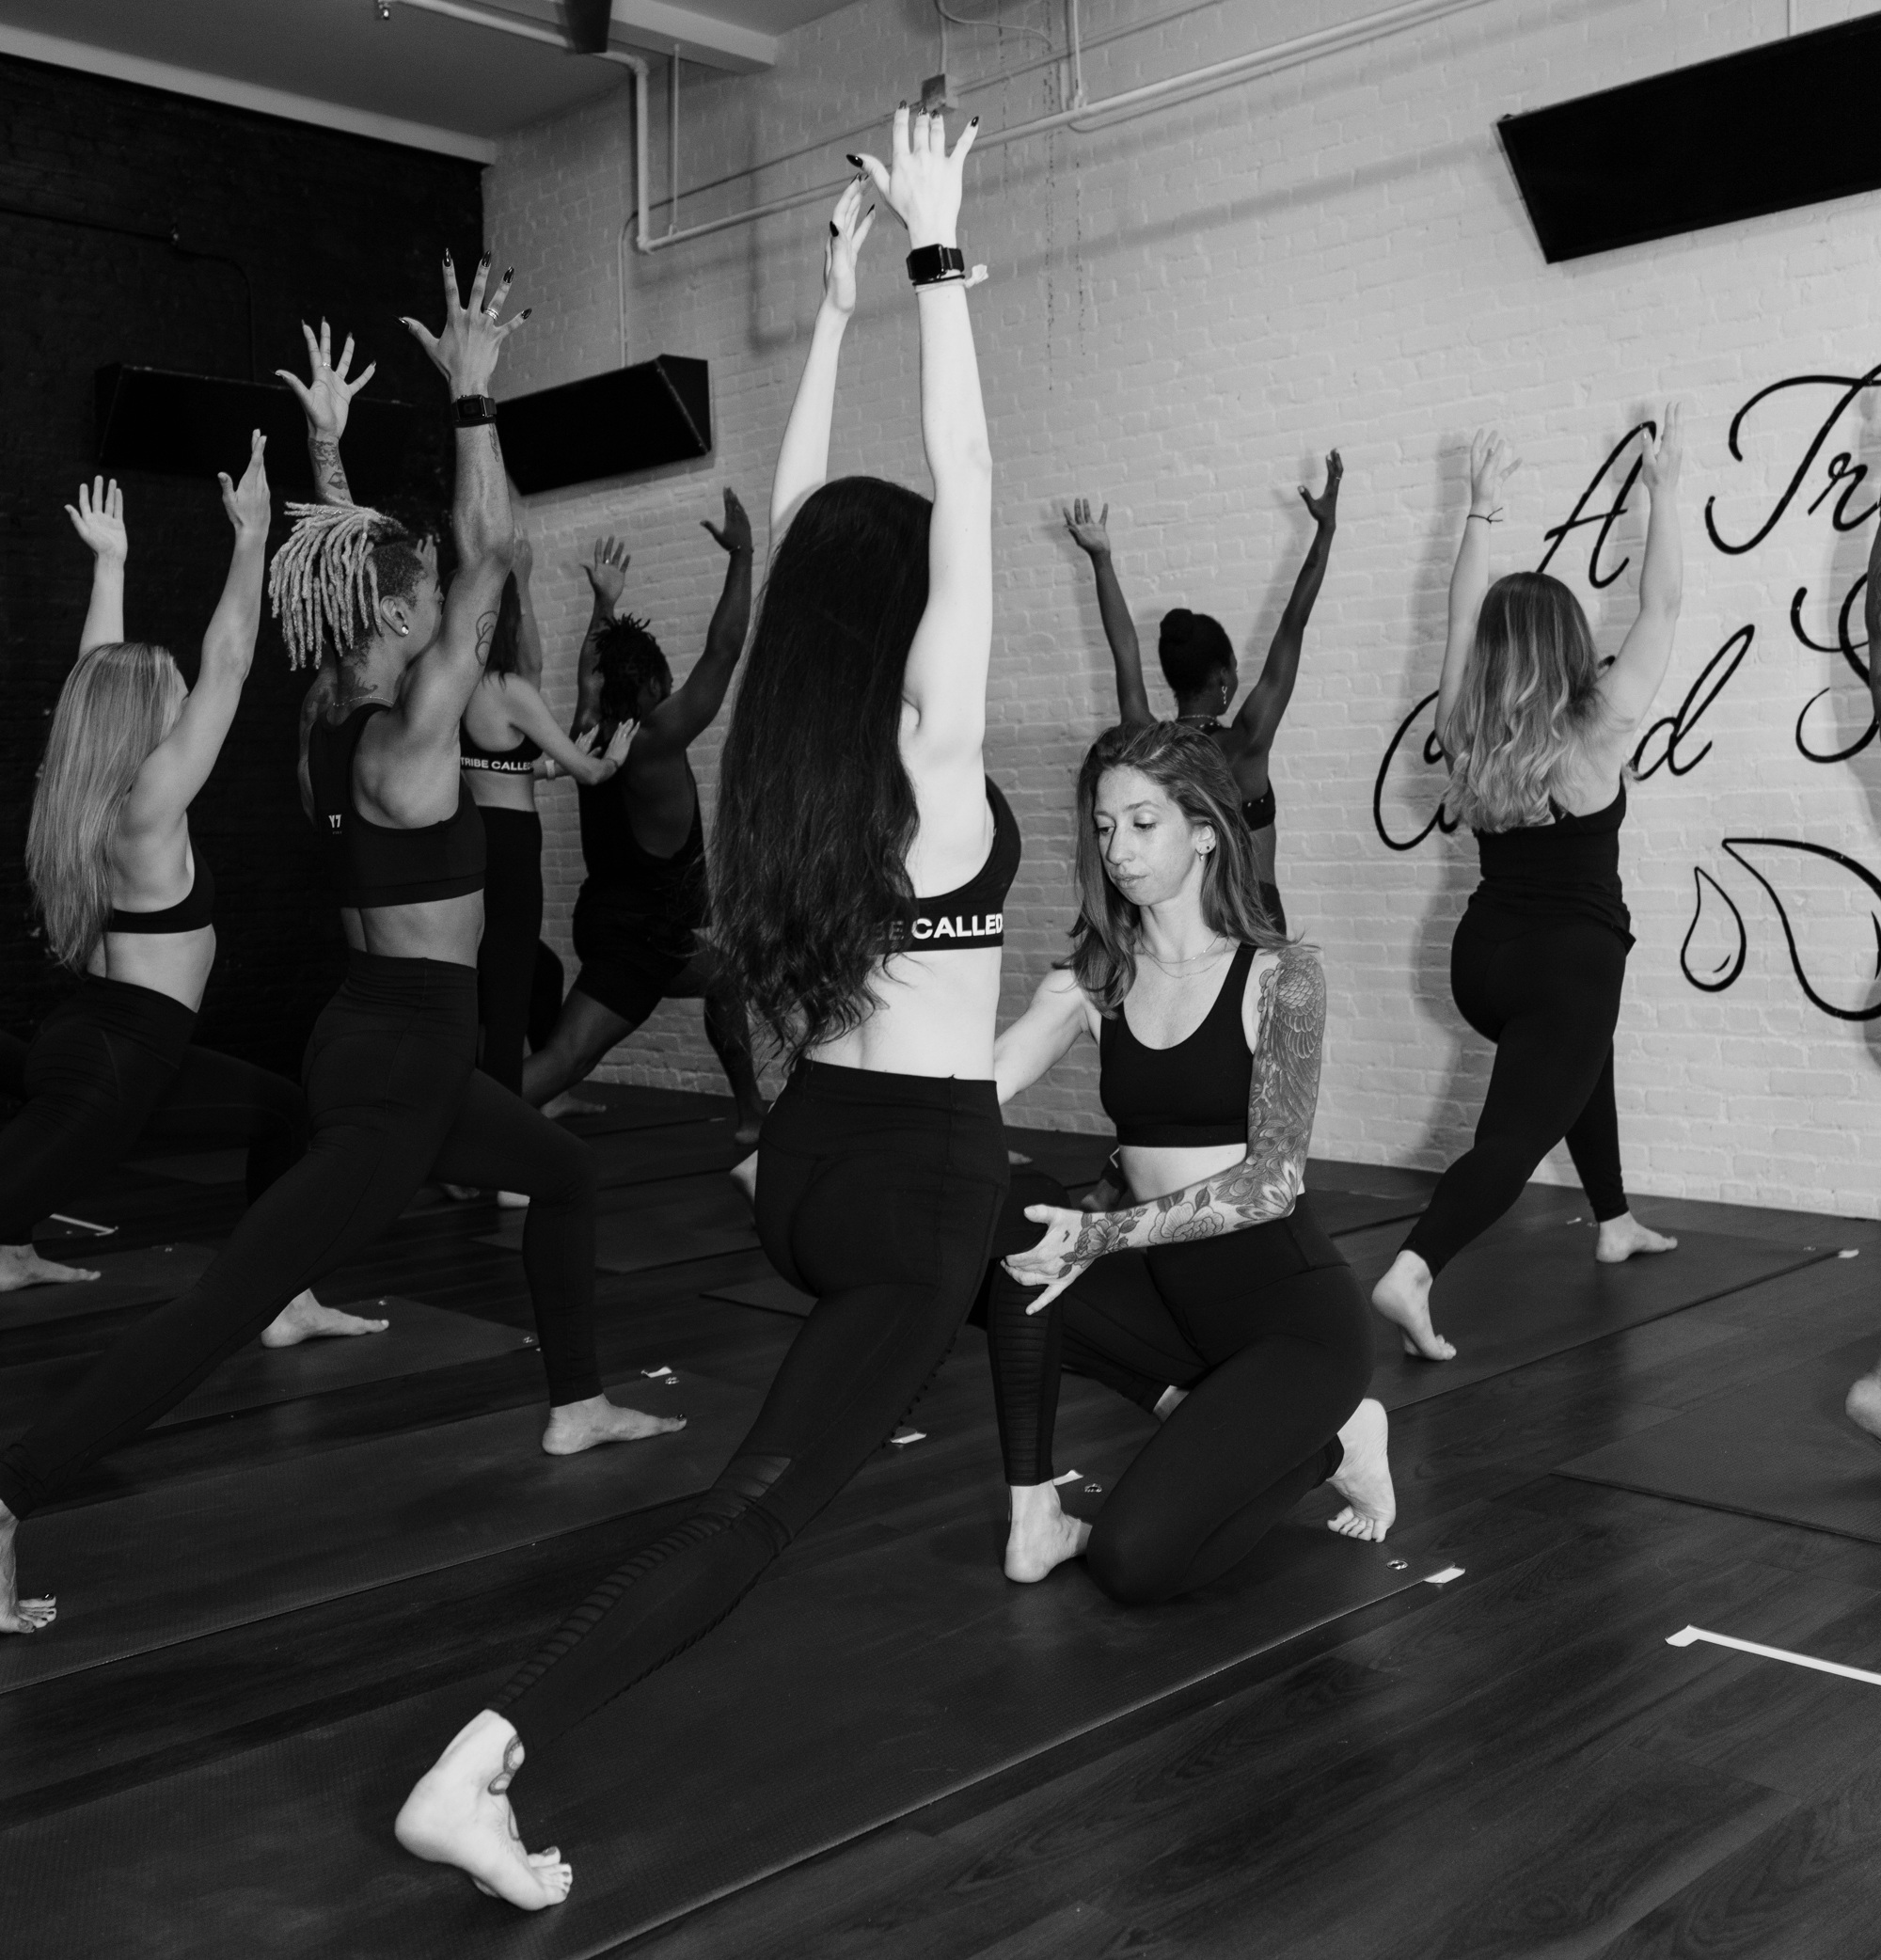 We Train Hard - Y7 Studio's 200-Hour Teacher Training adheres to the Yoga Alliance guidelines, while simultaneously going above and beyond the requirements by providing you with more contact hours, more hands-on experience and practical teaching than any other program.Upon completion of the program, you will be able to register as a Registered Yoga Teacher-200 with the Yoga Alliance.Y7 is proud of offer a scholarship to one participant per training as a way to provide yoga and its benefits to those who are already involved in service within their community and will continue to share the practice through the skill of teaching yoga.